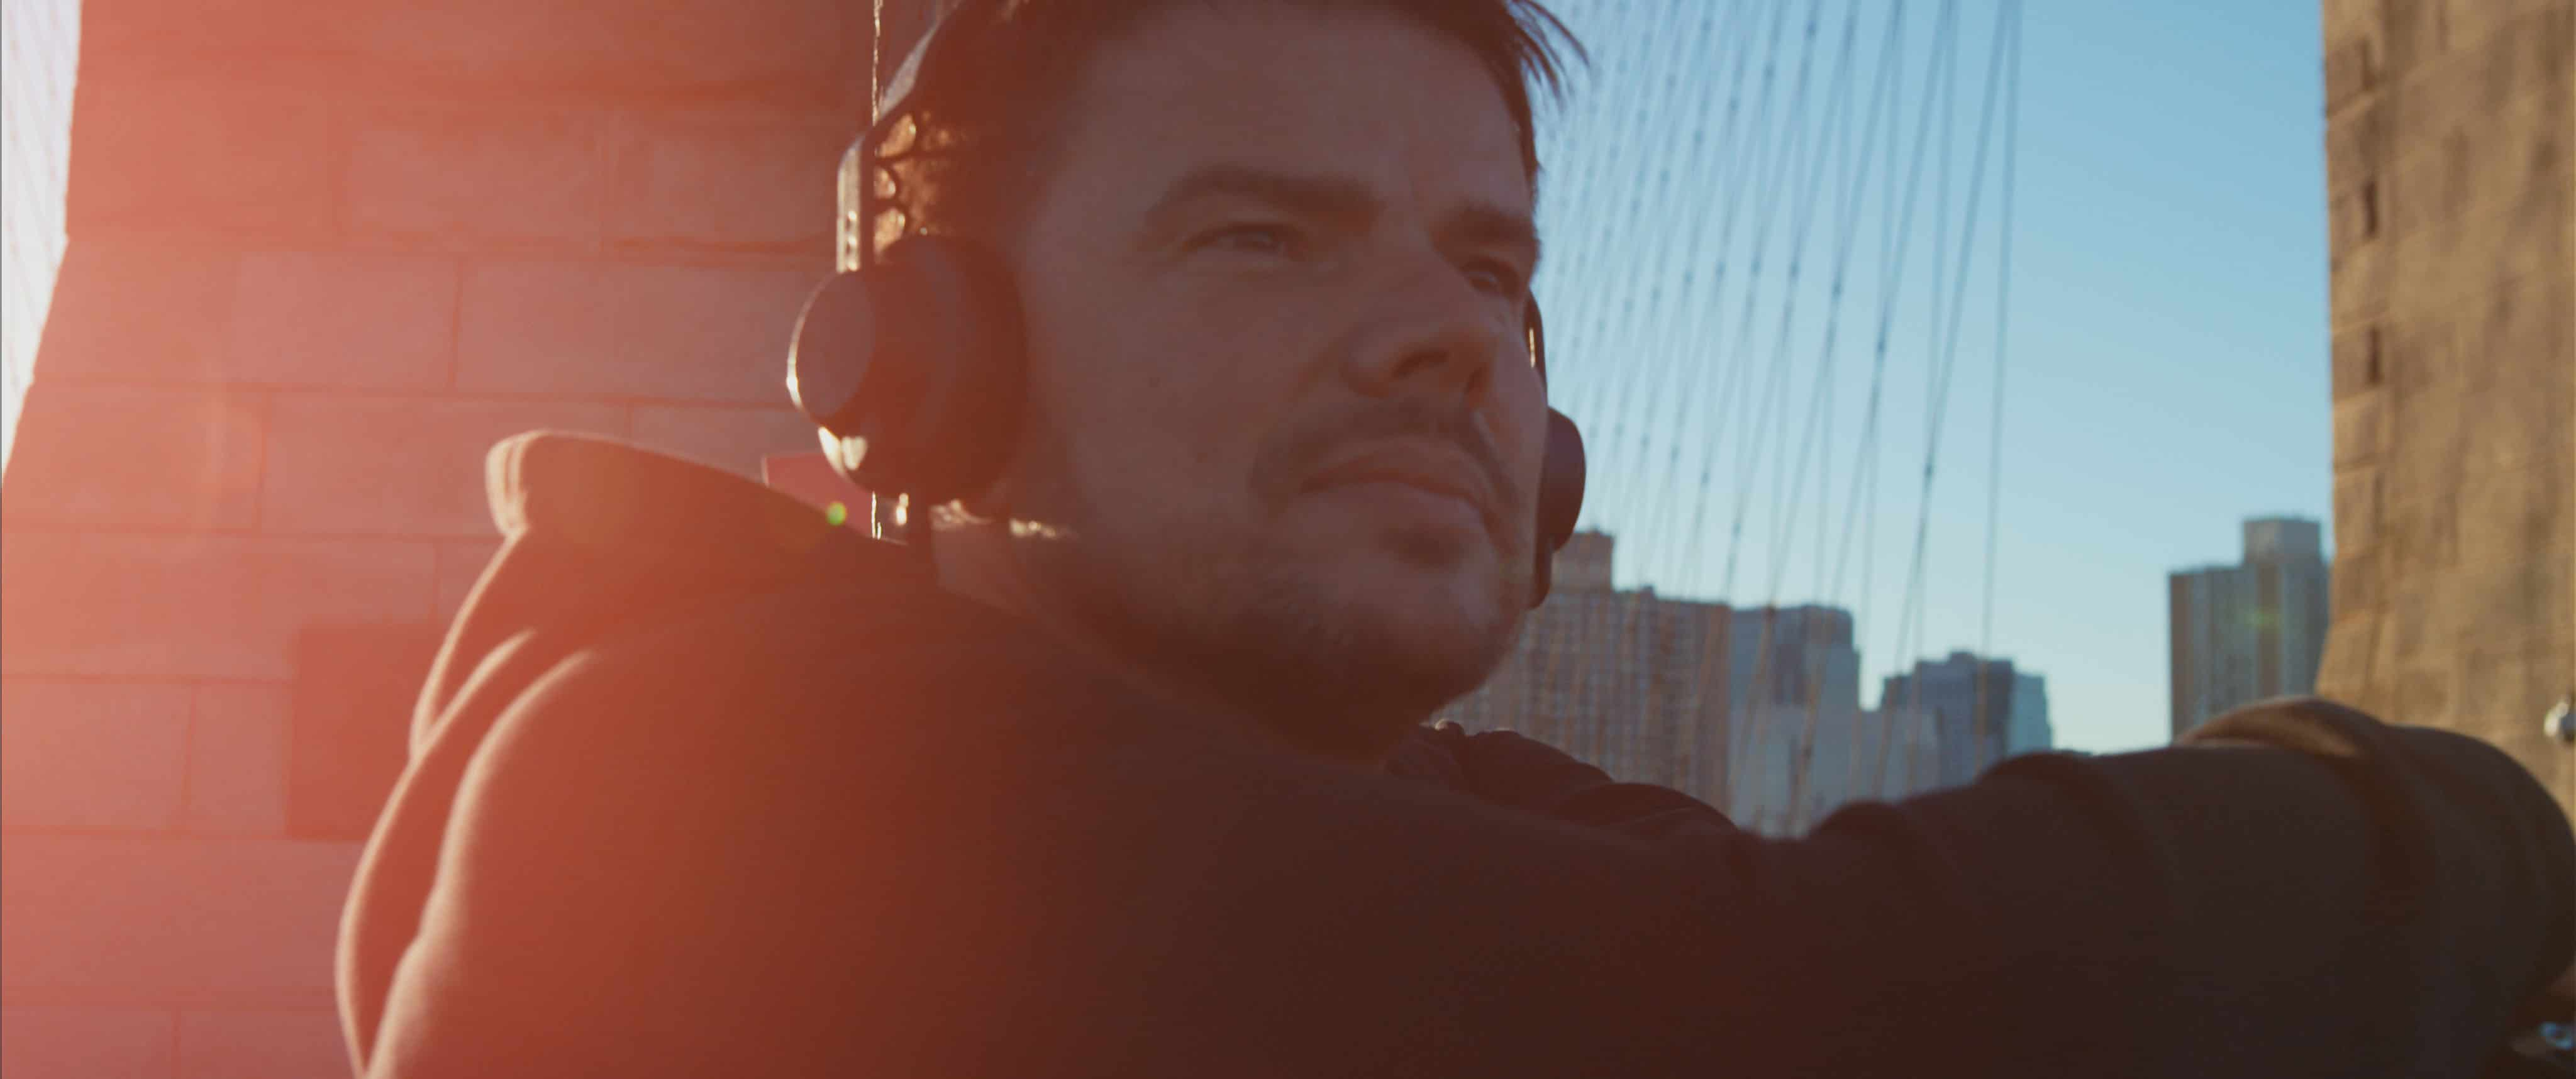 BIG Time film movie bjarke ingels architect 14